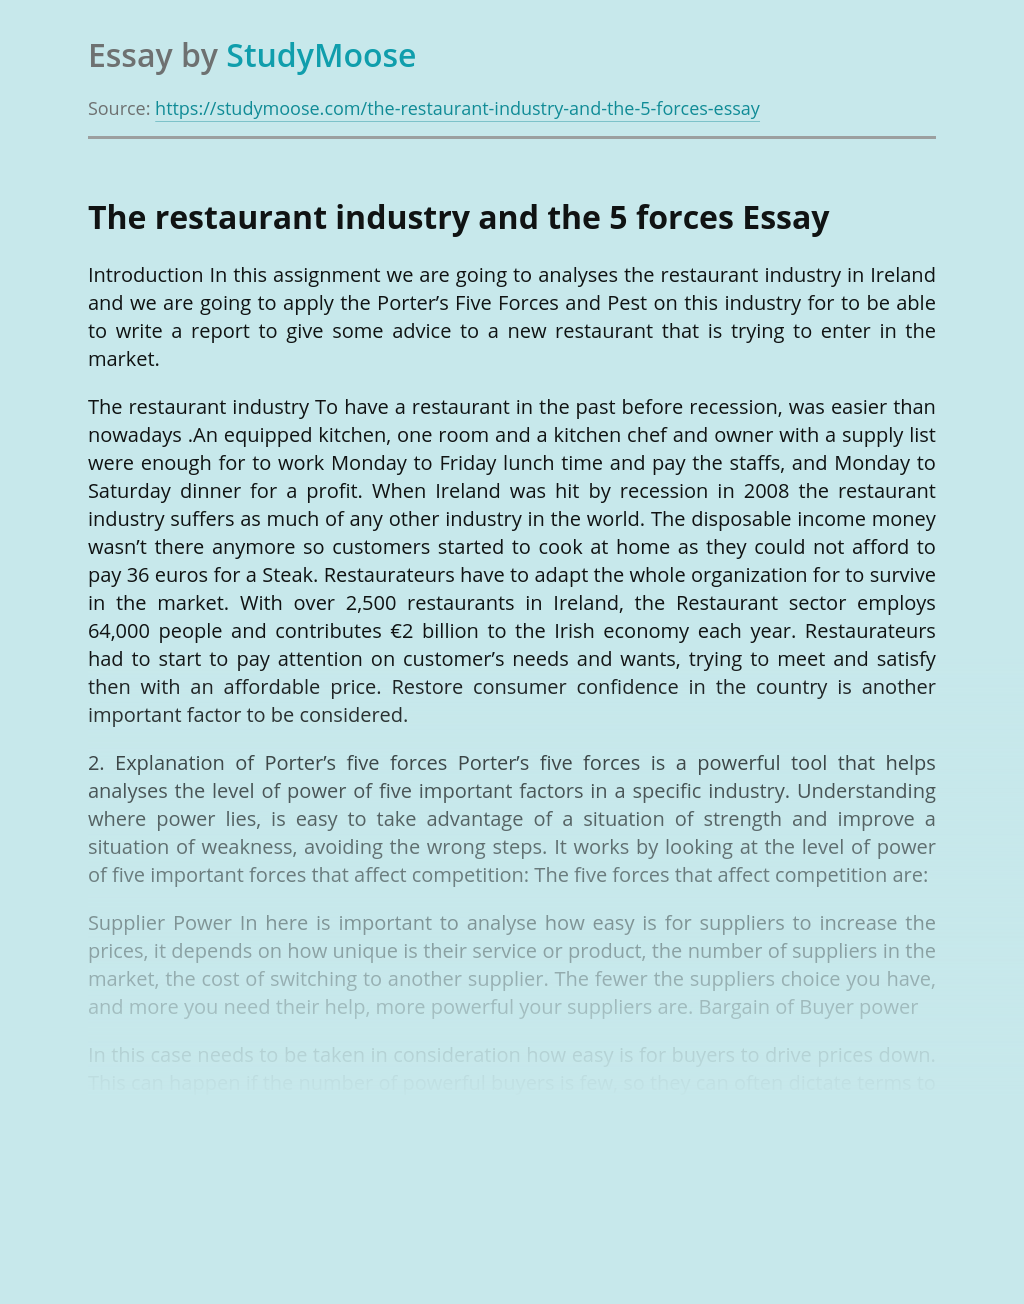 The restaurant industry and the 5 forces